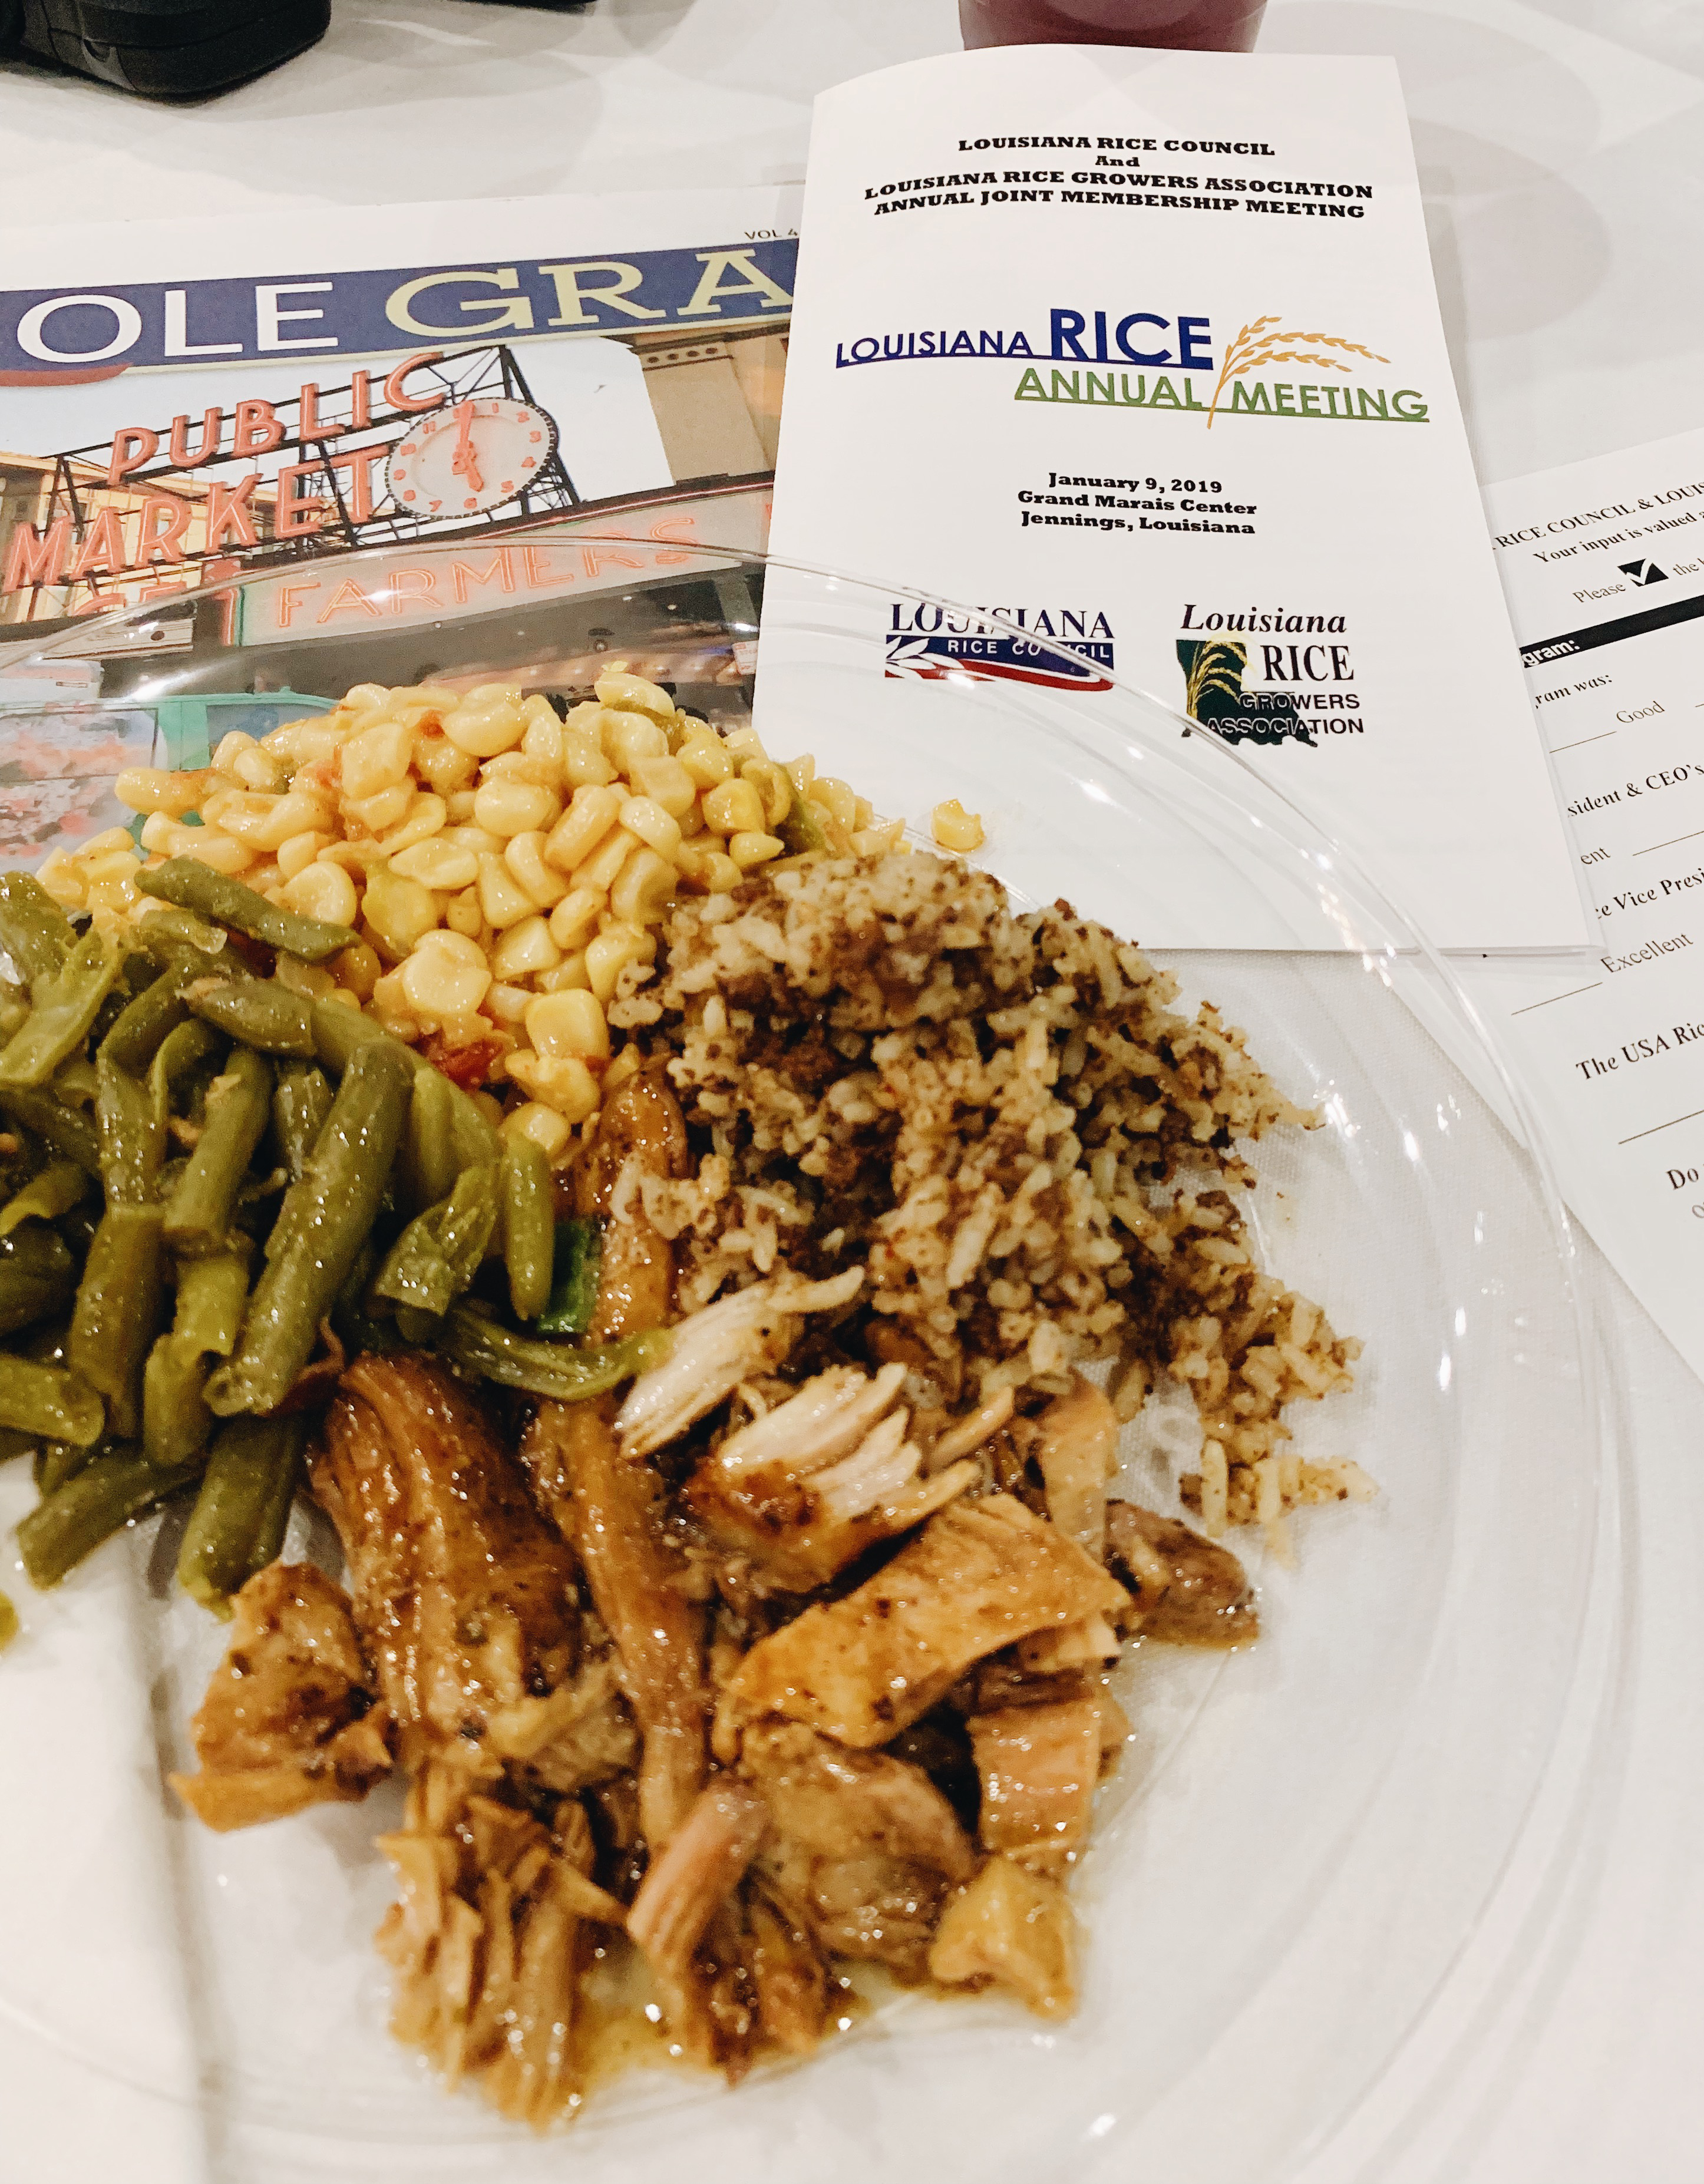 LA rice meeting program on table next to plate full of rice, green beans, corn, and stewed chicken